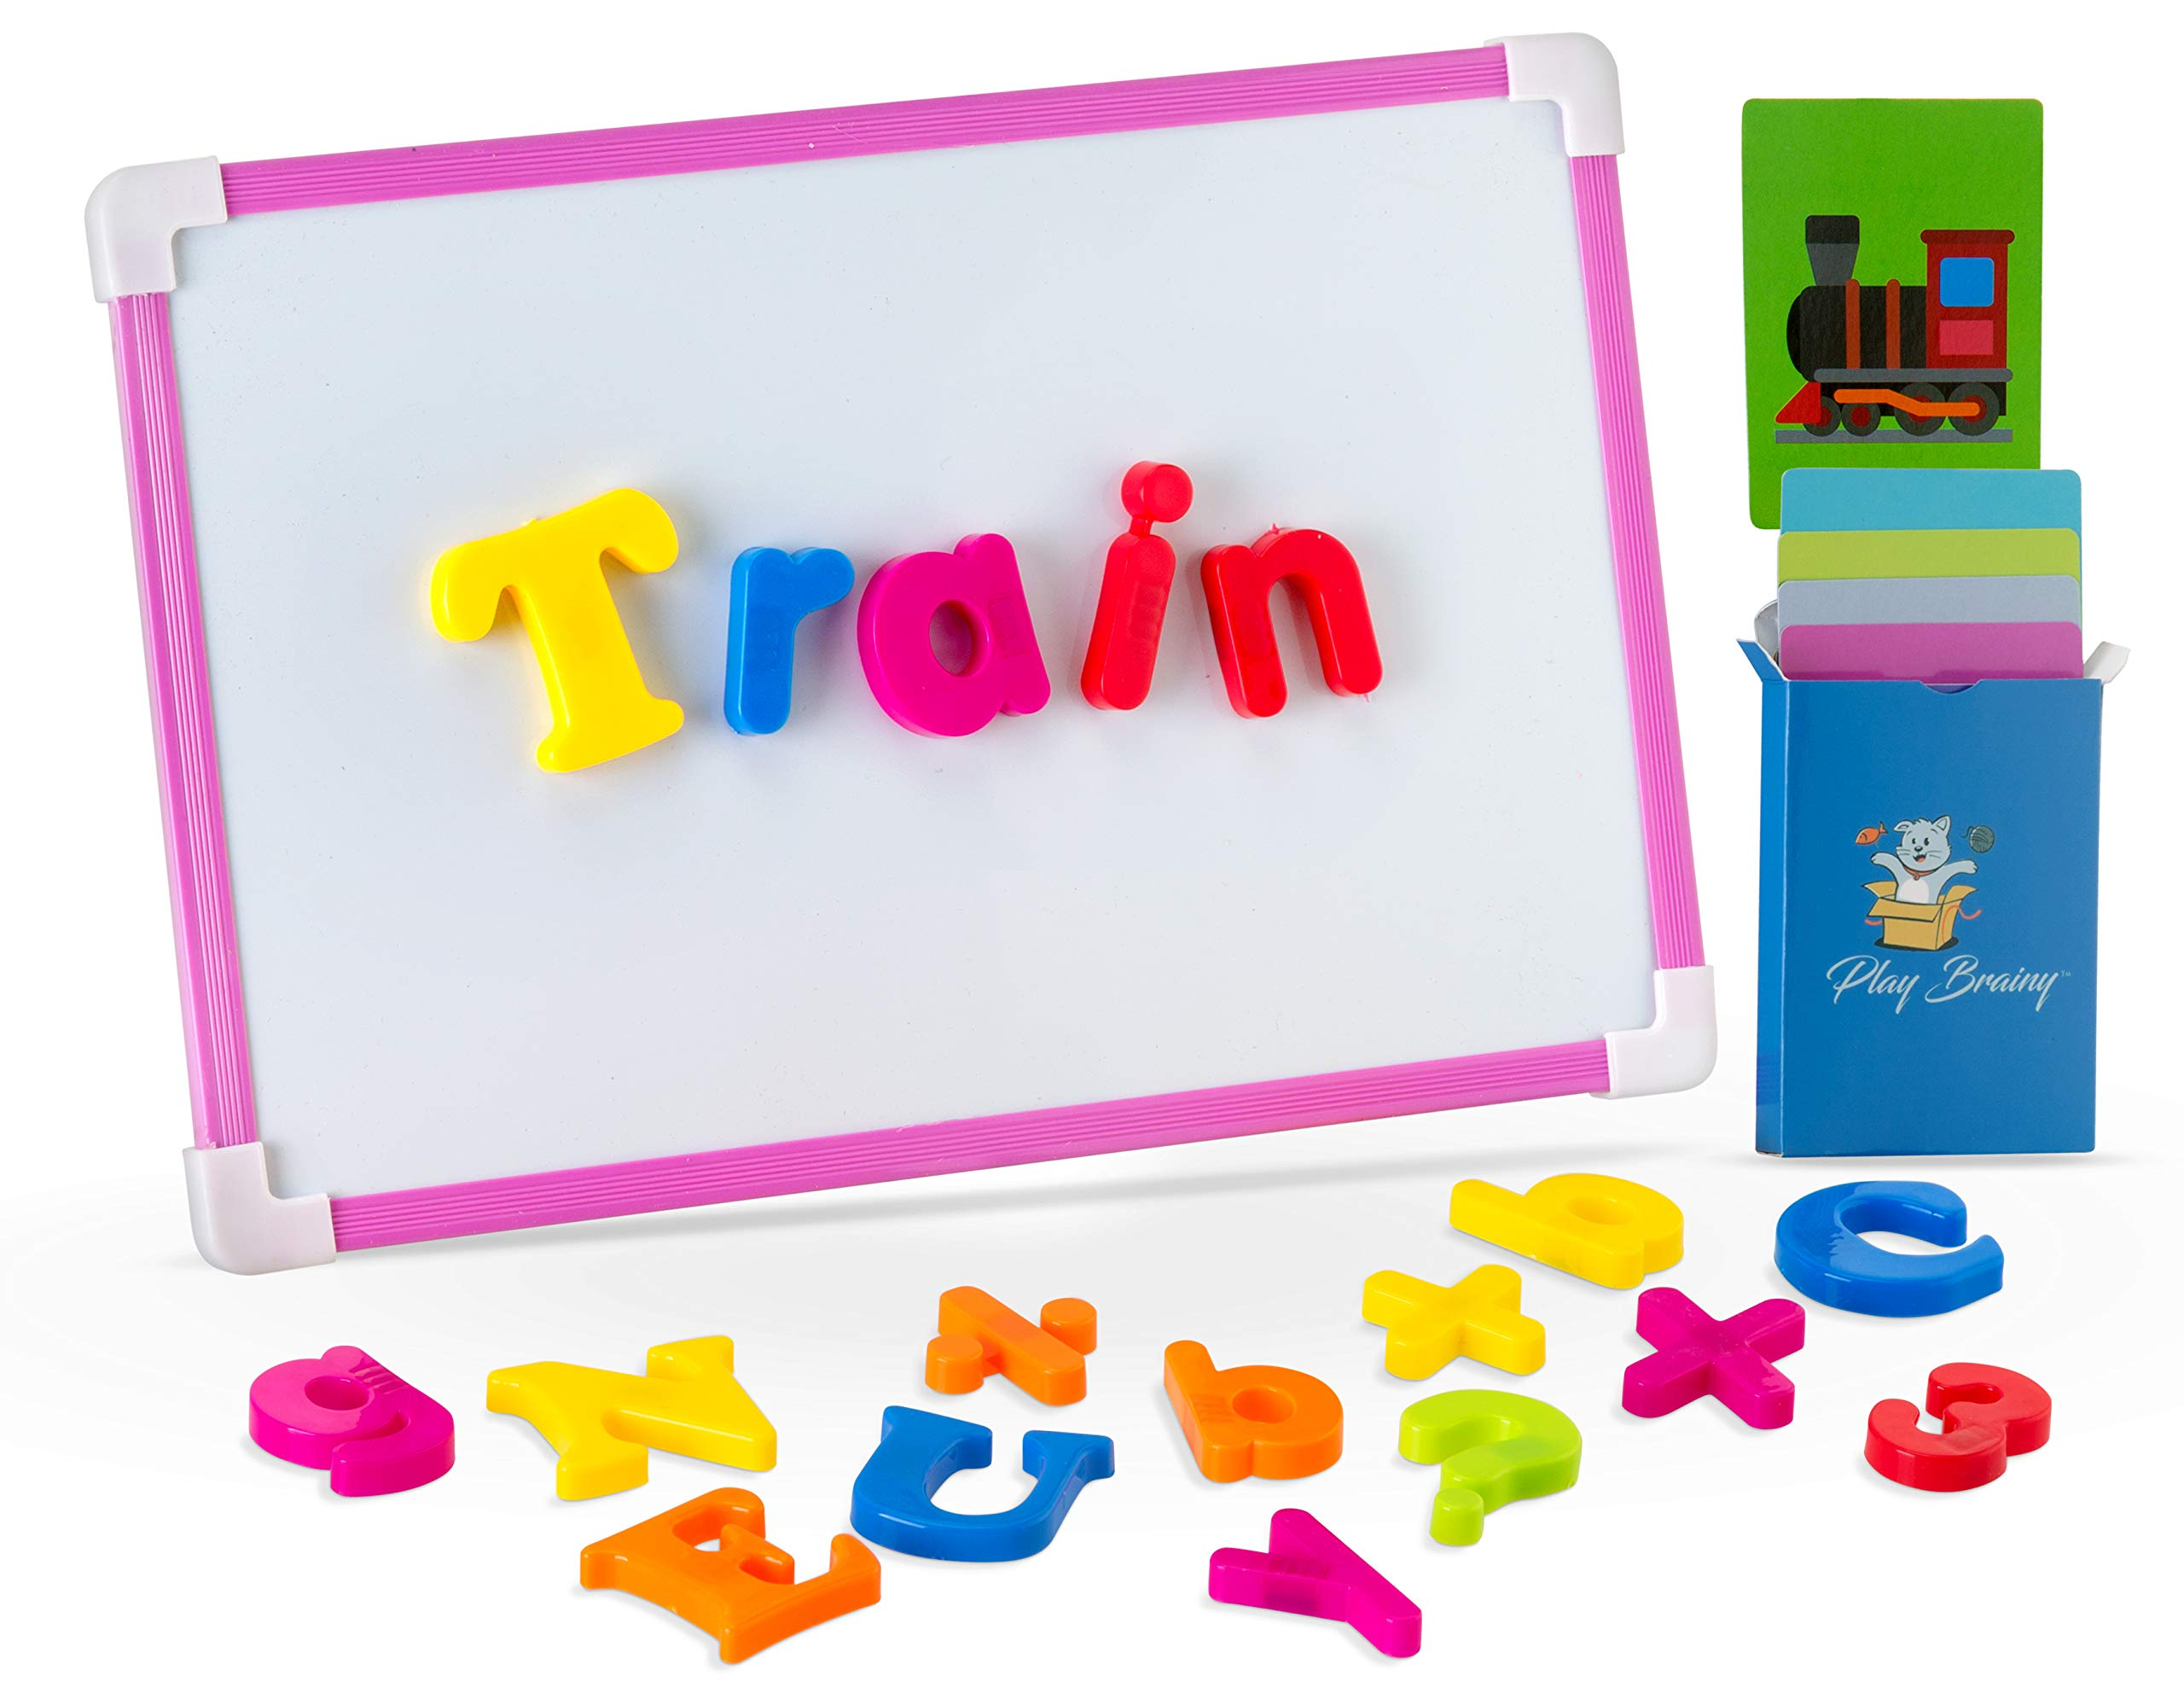 Play Brainy ABC Magnets Set with 30 Fun and Educational Picture Spelling Cards - 78 Piece Magnetic Alphabet and Number Set - Magnetic Board Included - Great for Home or Classroom Use- Bag Included